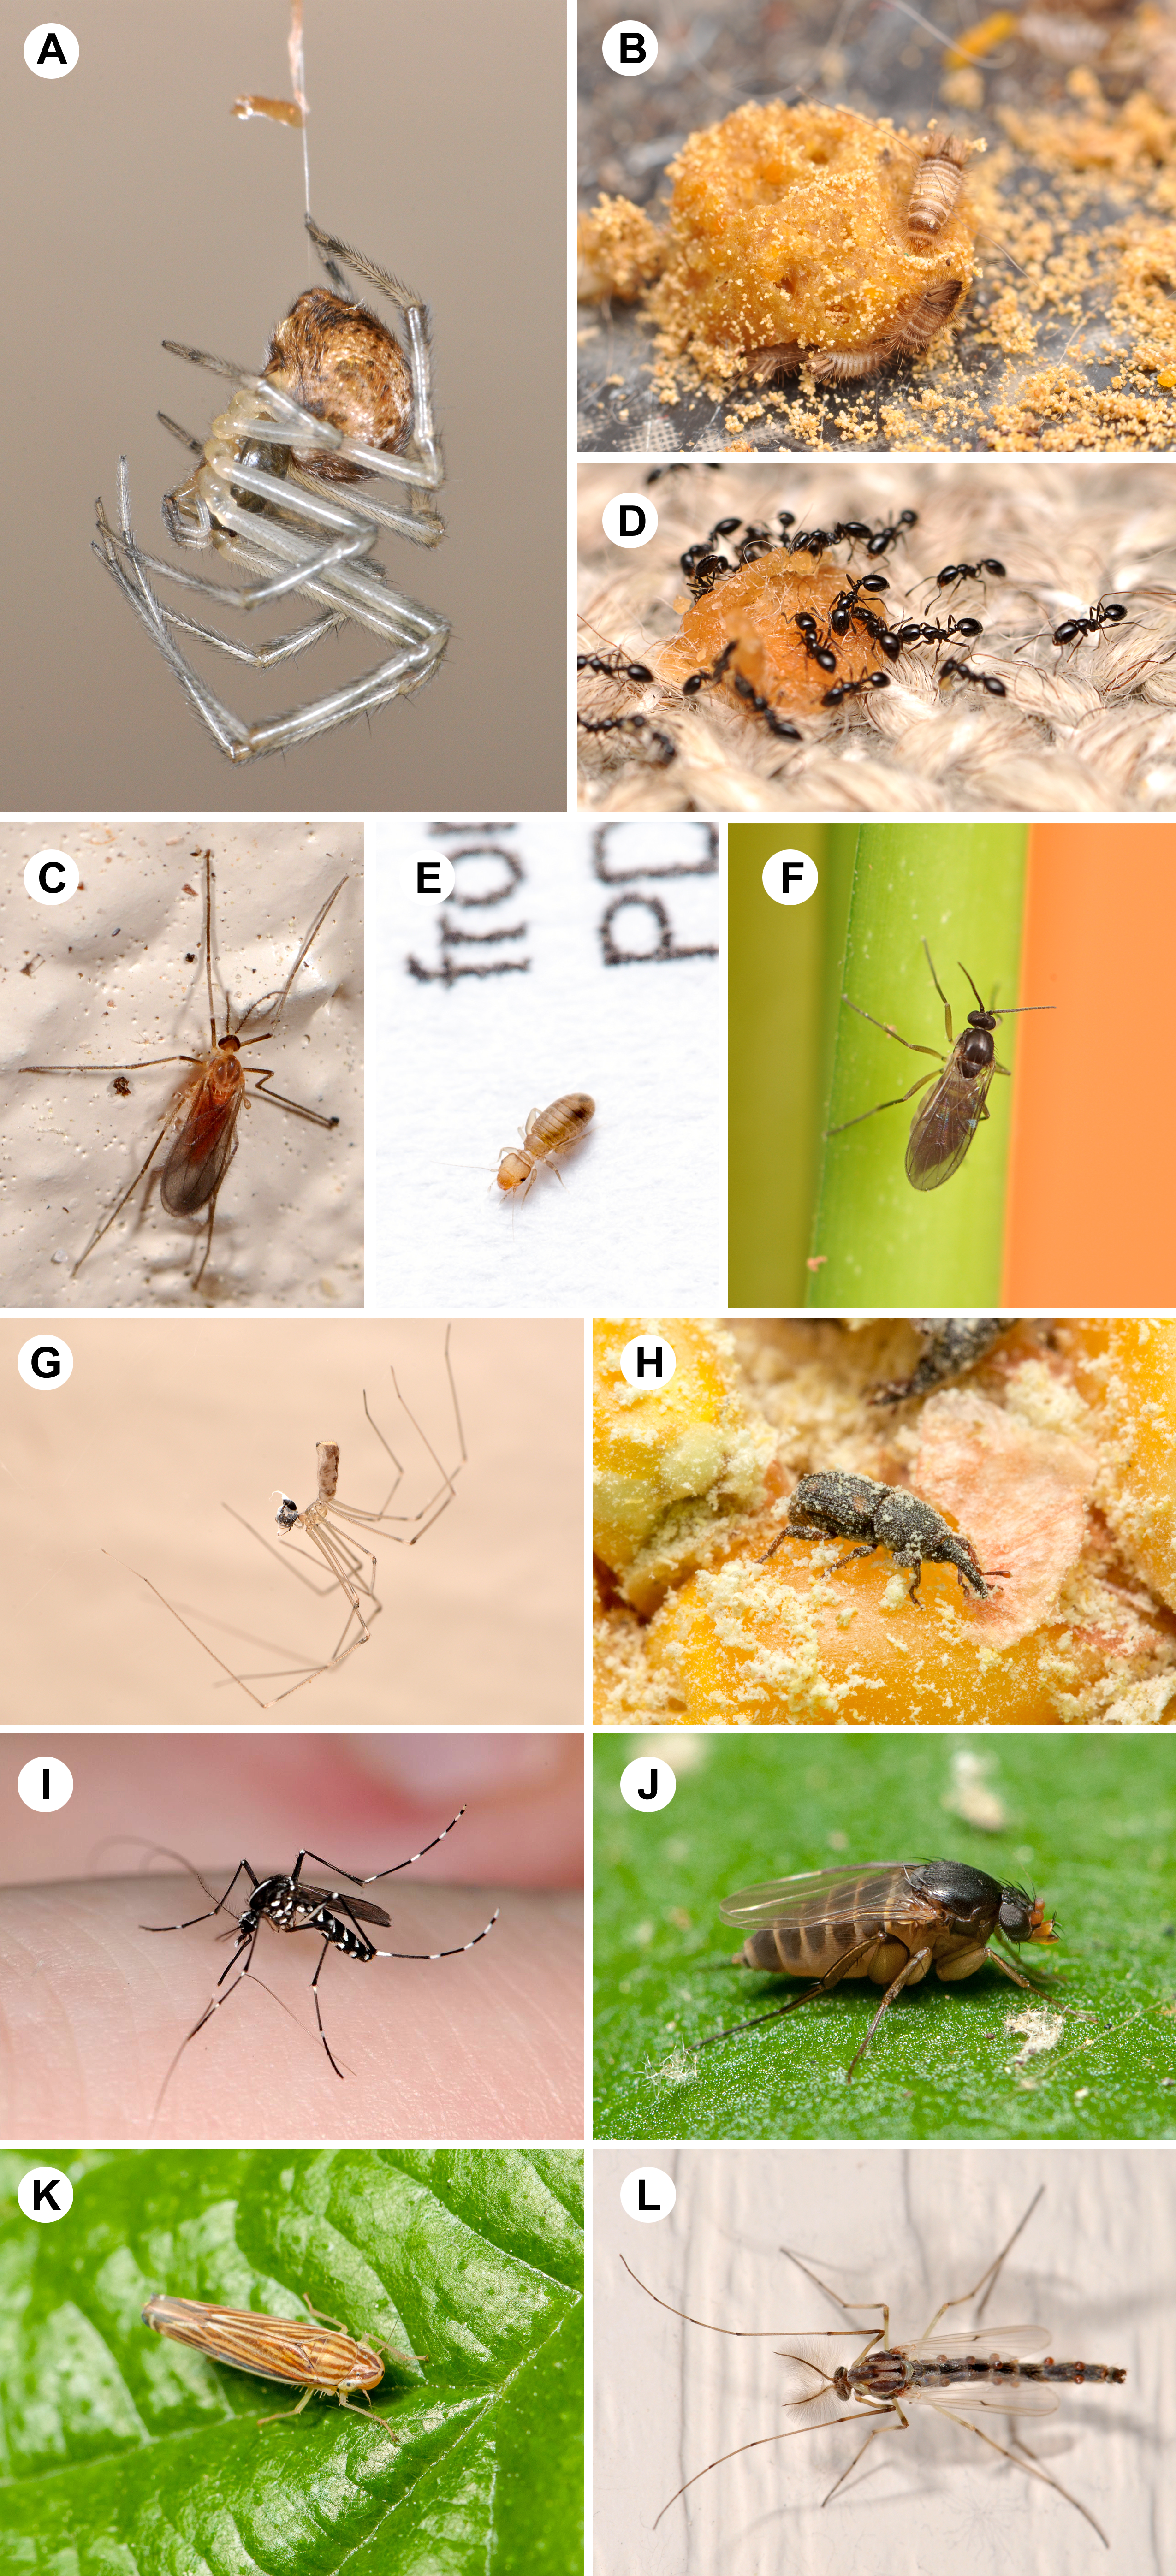 (A) cobweb spiders, 100%; (B) carpet beetles, 100%; (C) gall midges, 100%; (D) ants, 100%; (E) book lice, 98%; (F) dark-winged fungus gnats, 96%; (G) cellar spiders, 84%; (H) weevils, 82%; (I) mosquitoes, 82%; (J) scuttle flies, 82%; (K) leafhoppers, 82%; (L) non-biting midges, 80%.